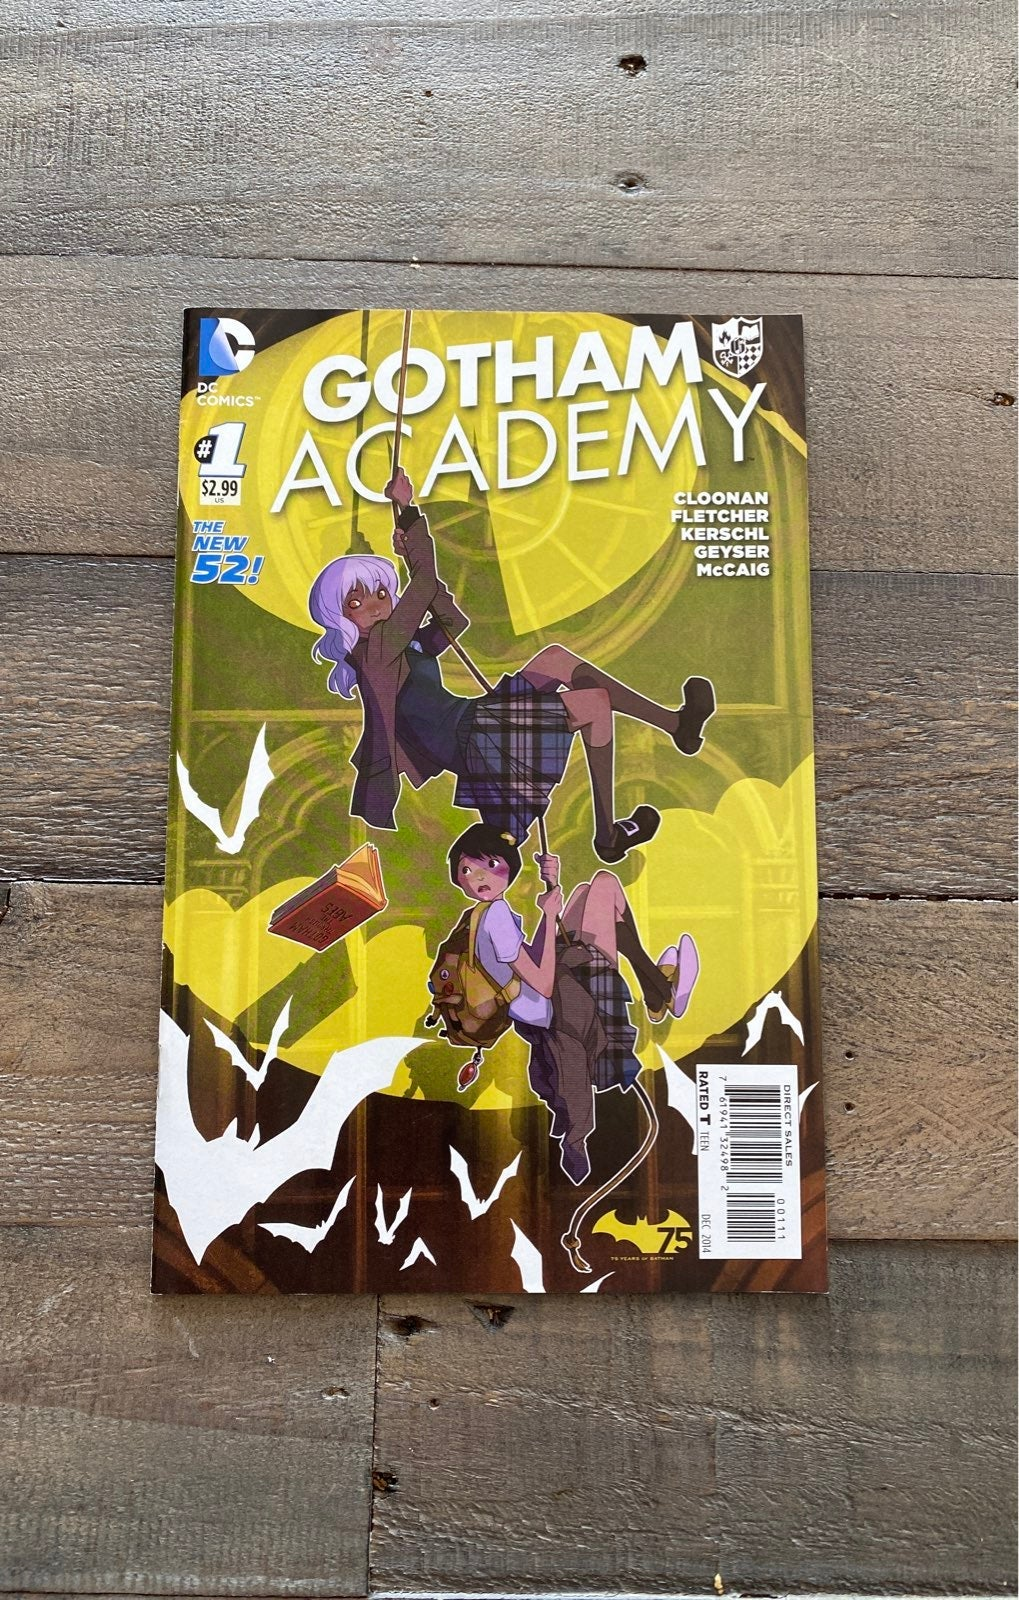 Gotham Academy #1 Cover A 1st print!